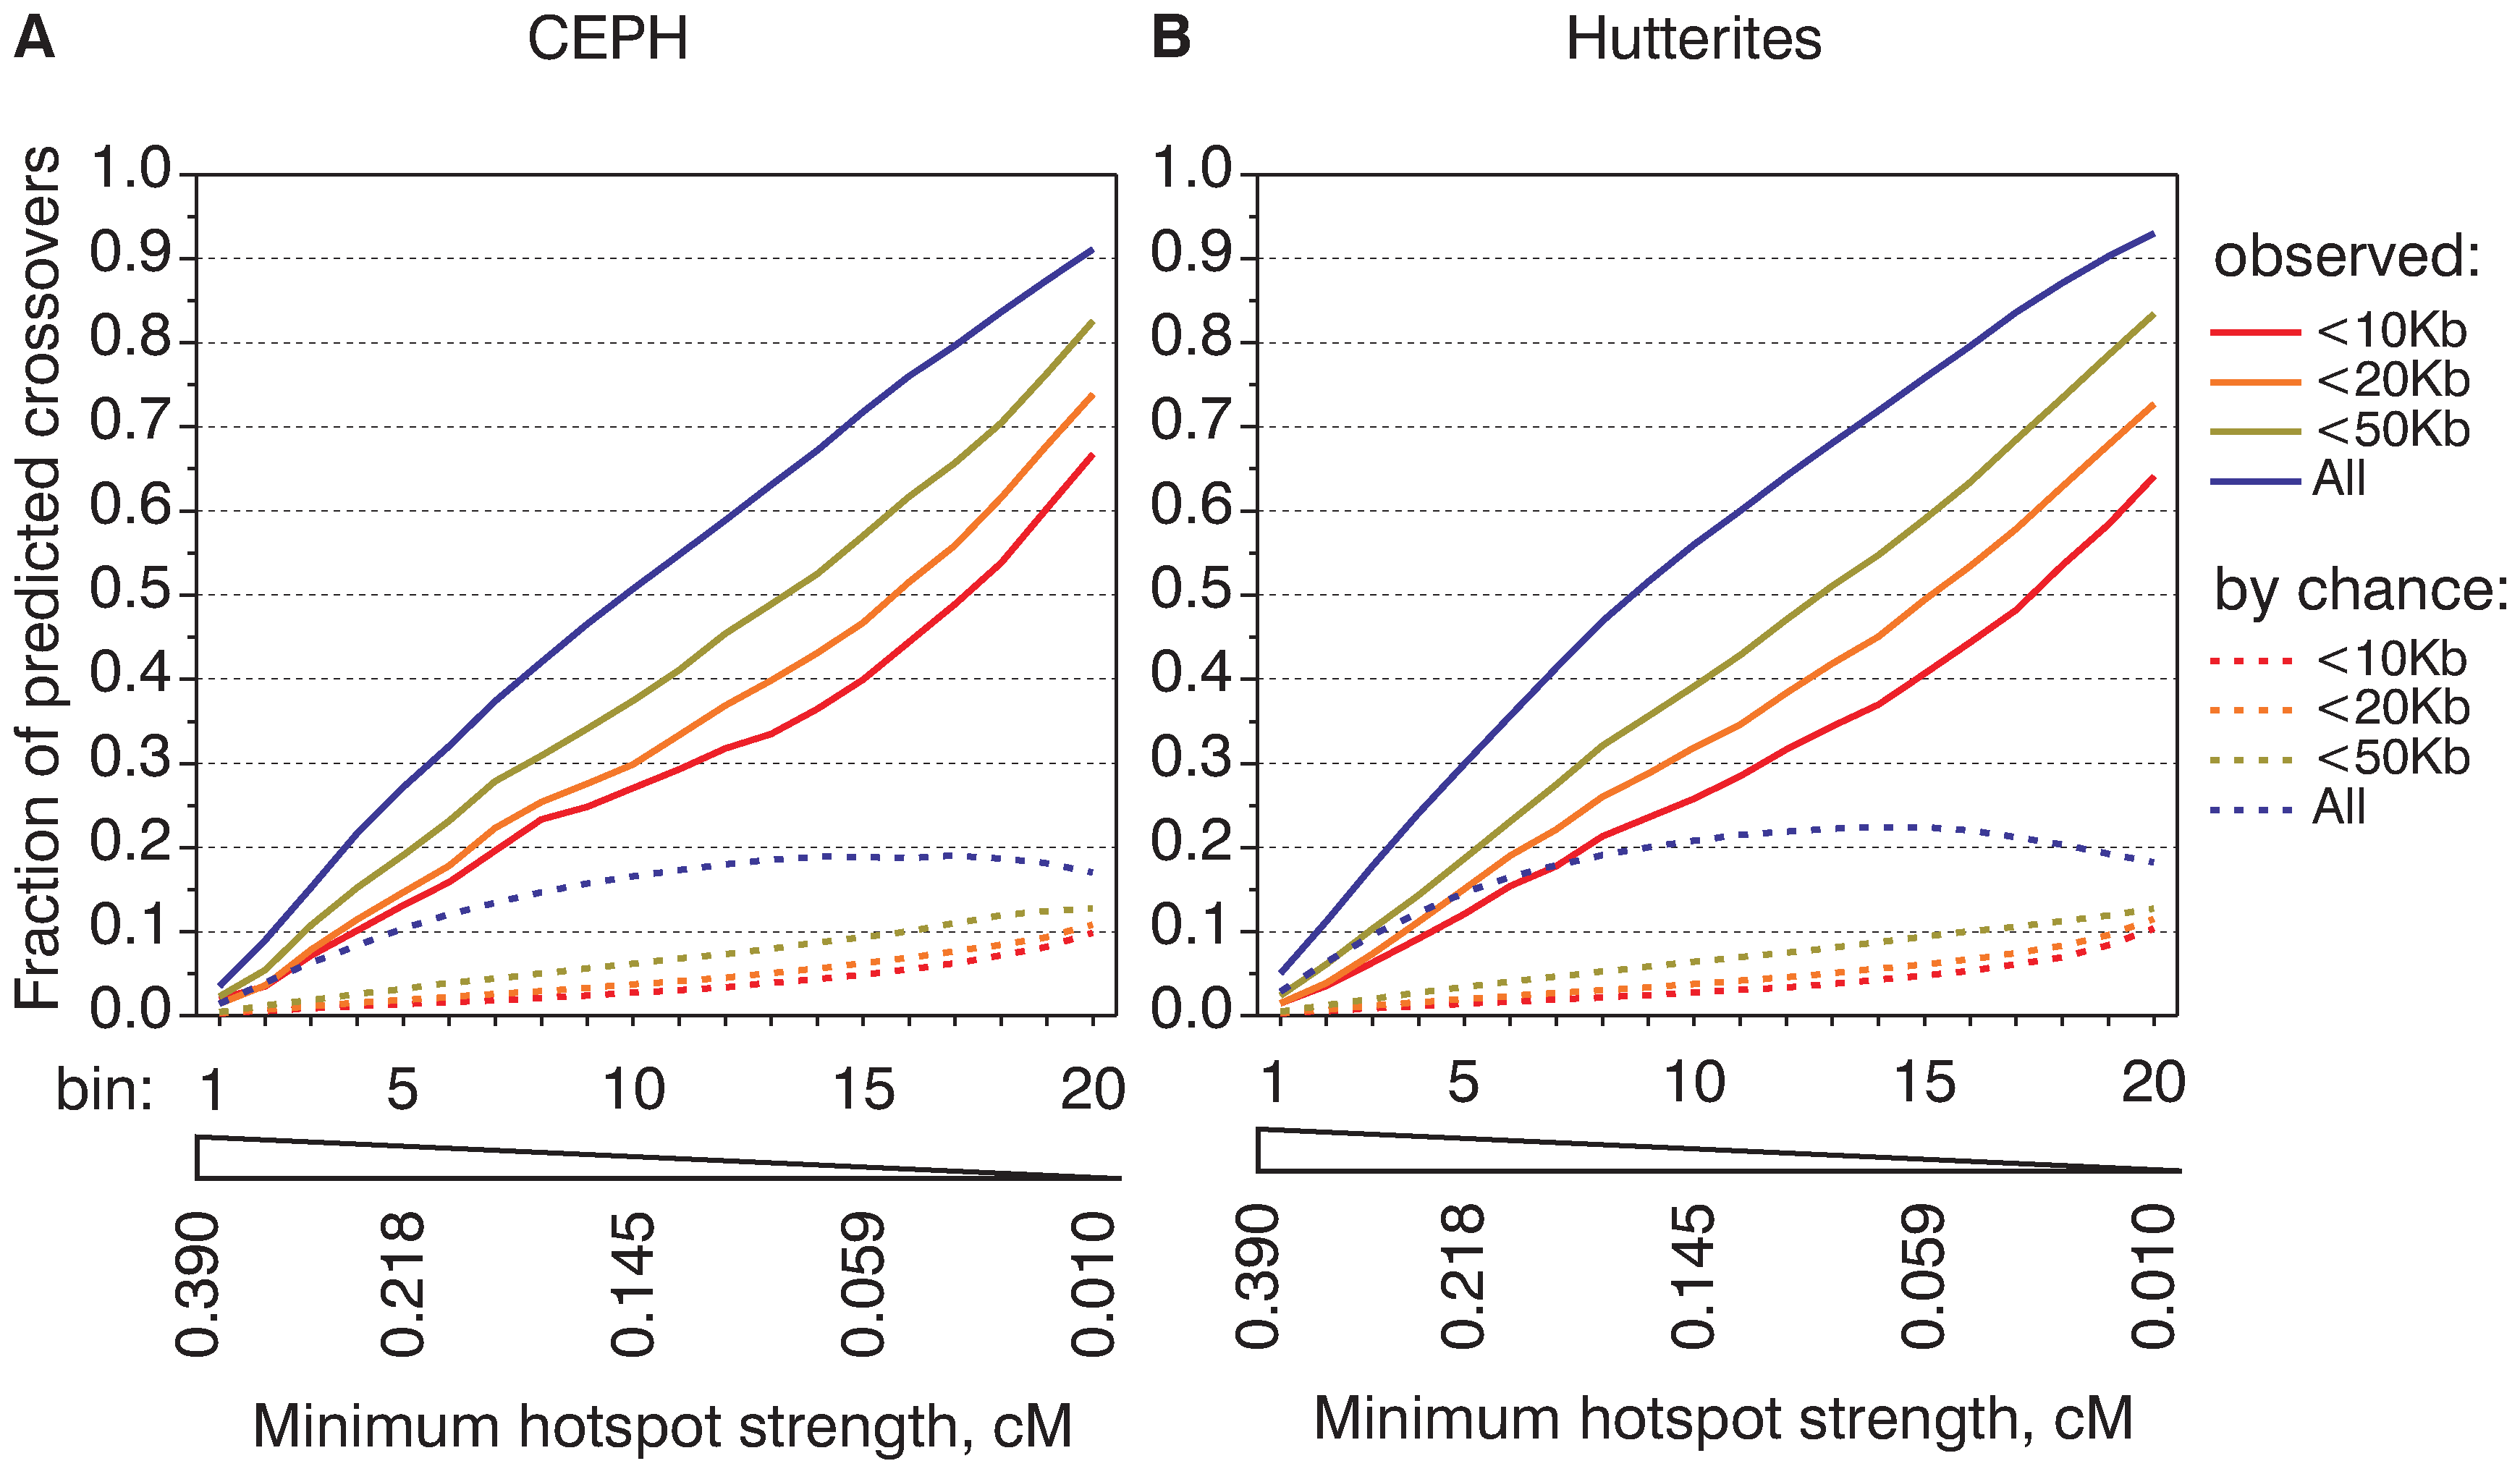 Hotspots of different strengths are equally active in recombination.